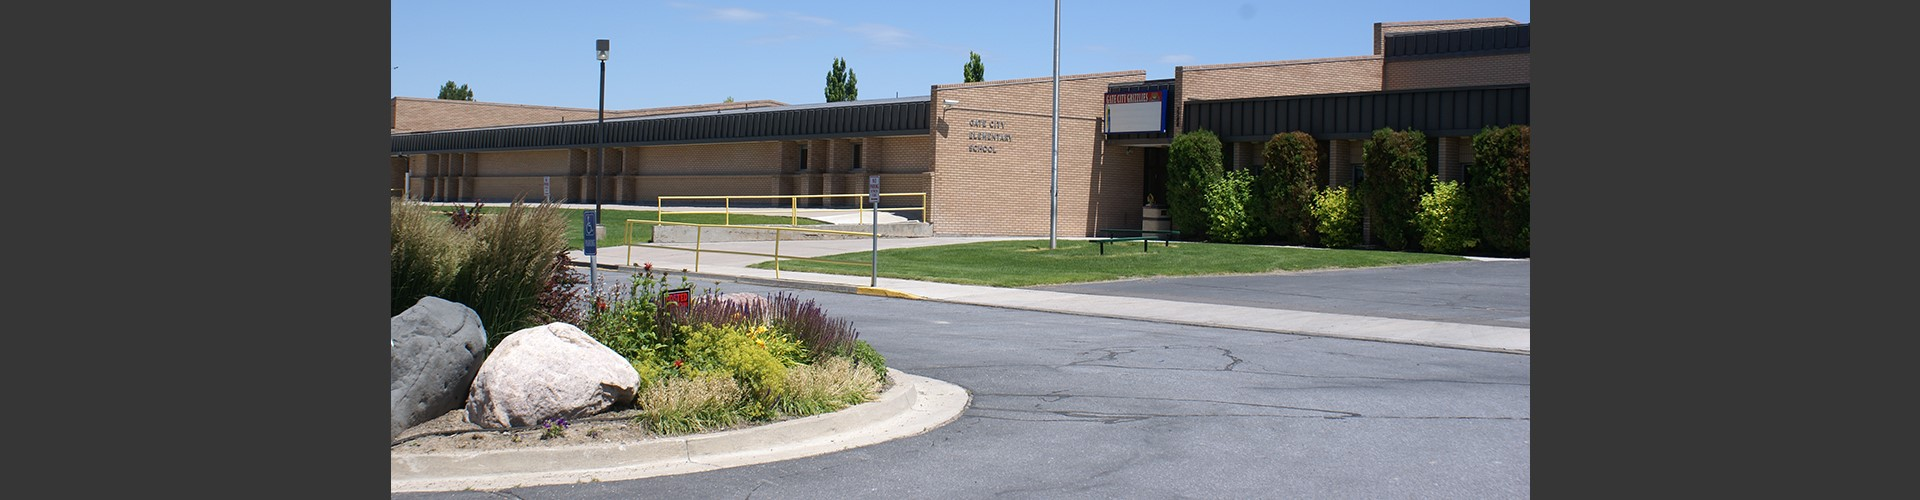 Picture of the front of Gate City Elementary building